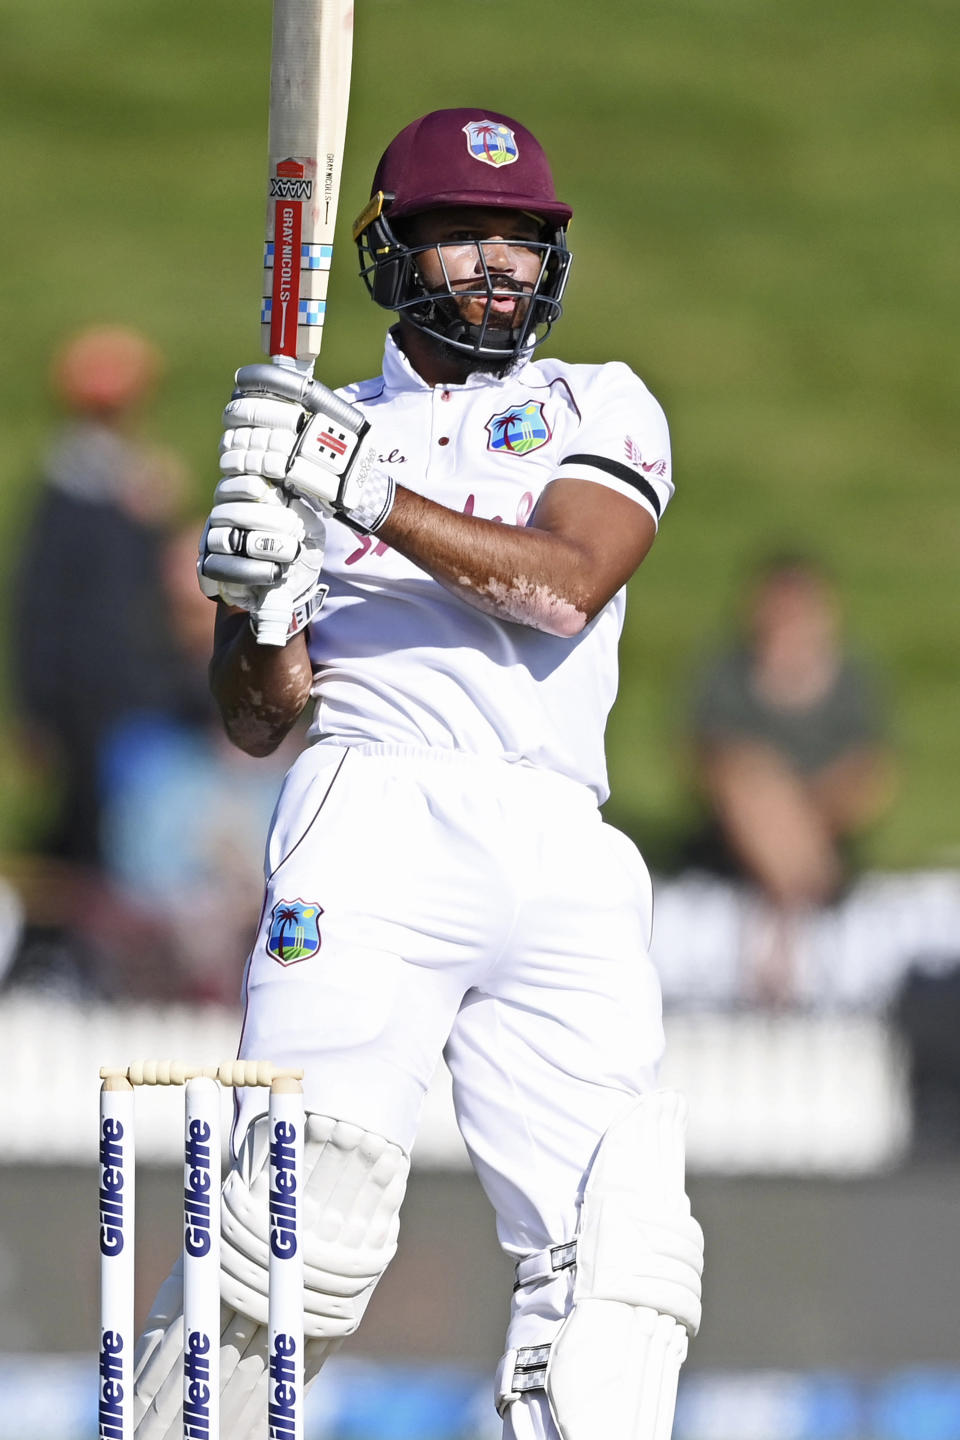 West Indies opener John Campbell bats during play on day two of the first cricket test between the West Indies and New Zealand in Hamilton, New Zealand, Friday, Dec. 4, 2020. (Andrew Cornaga/Photosport via AP)